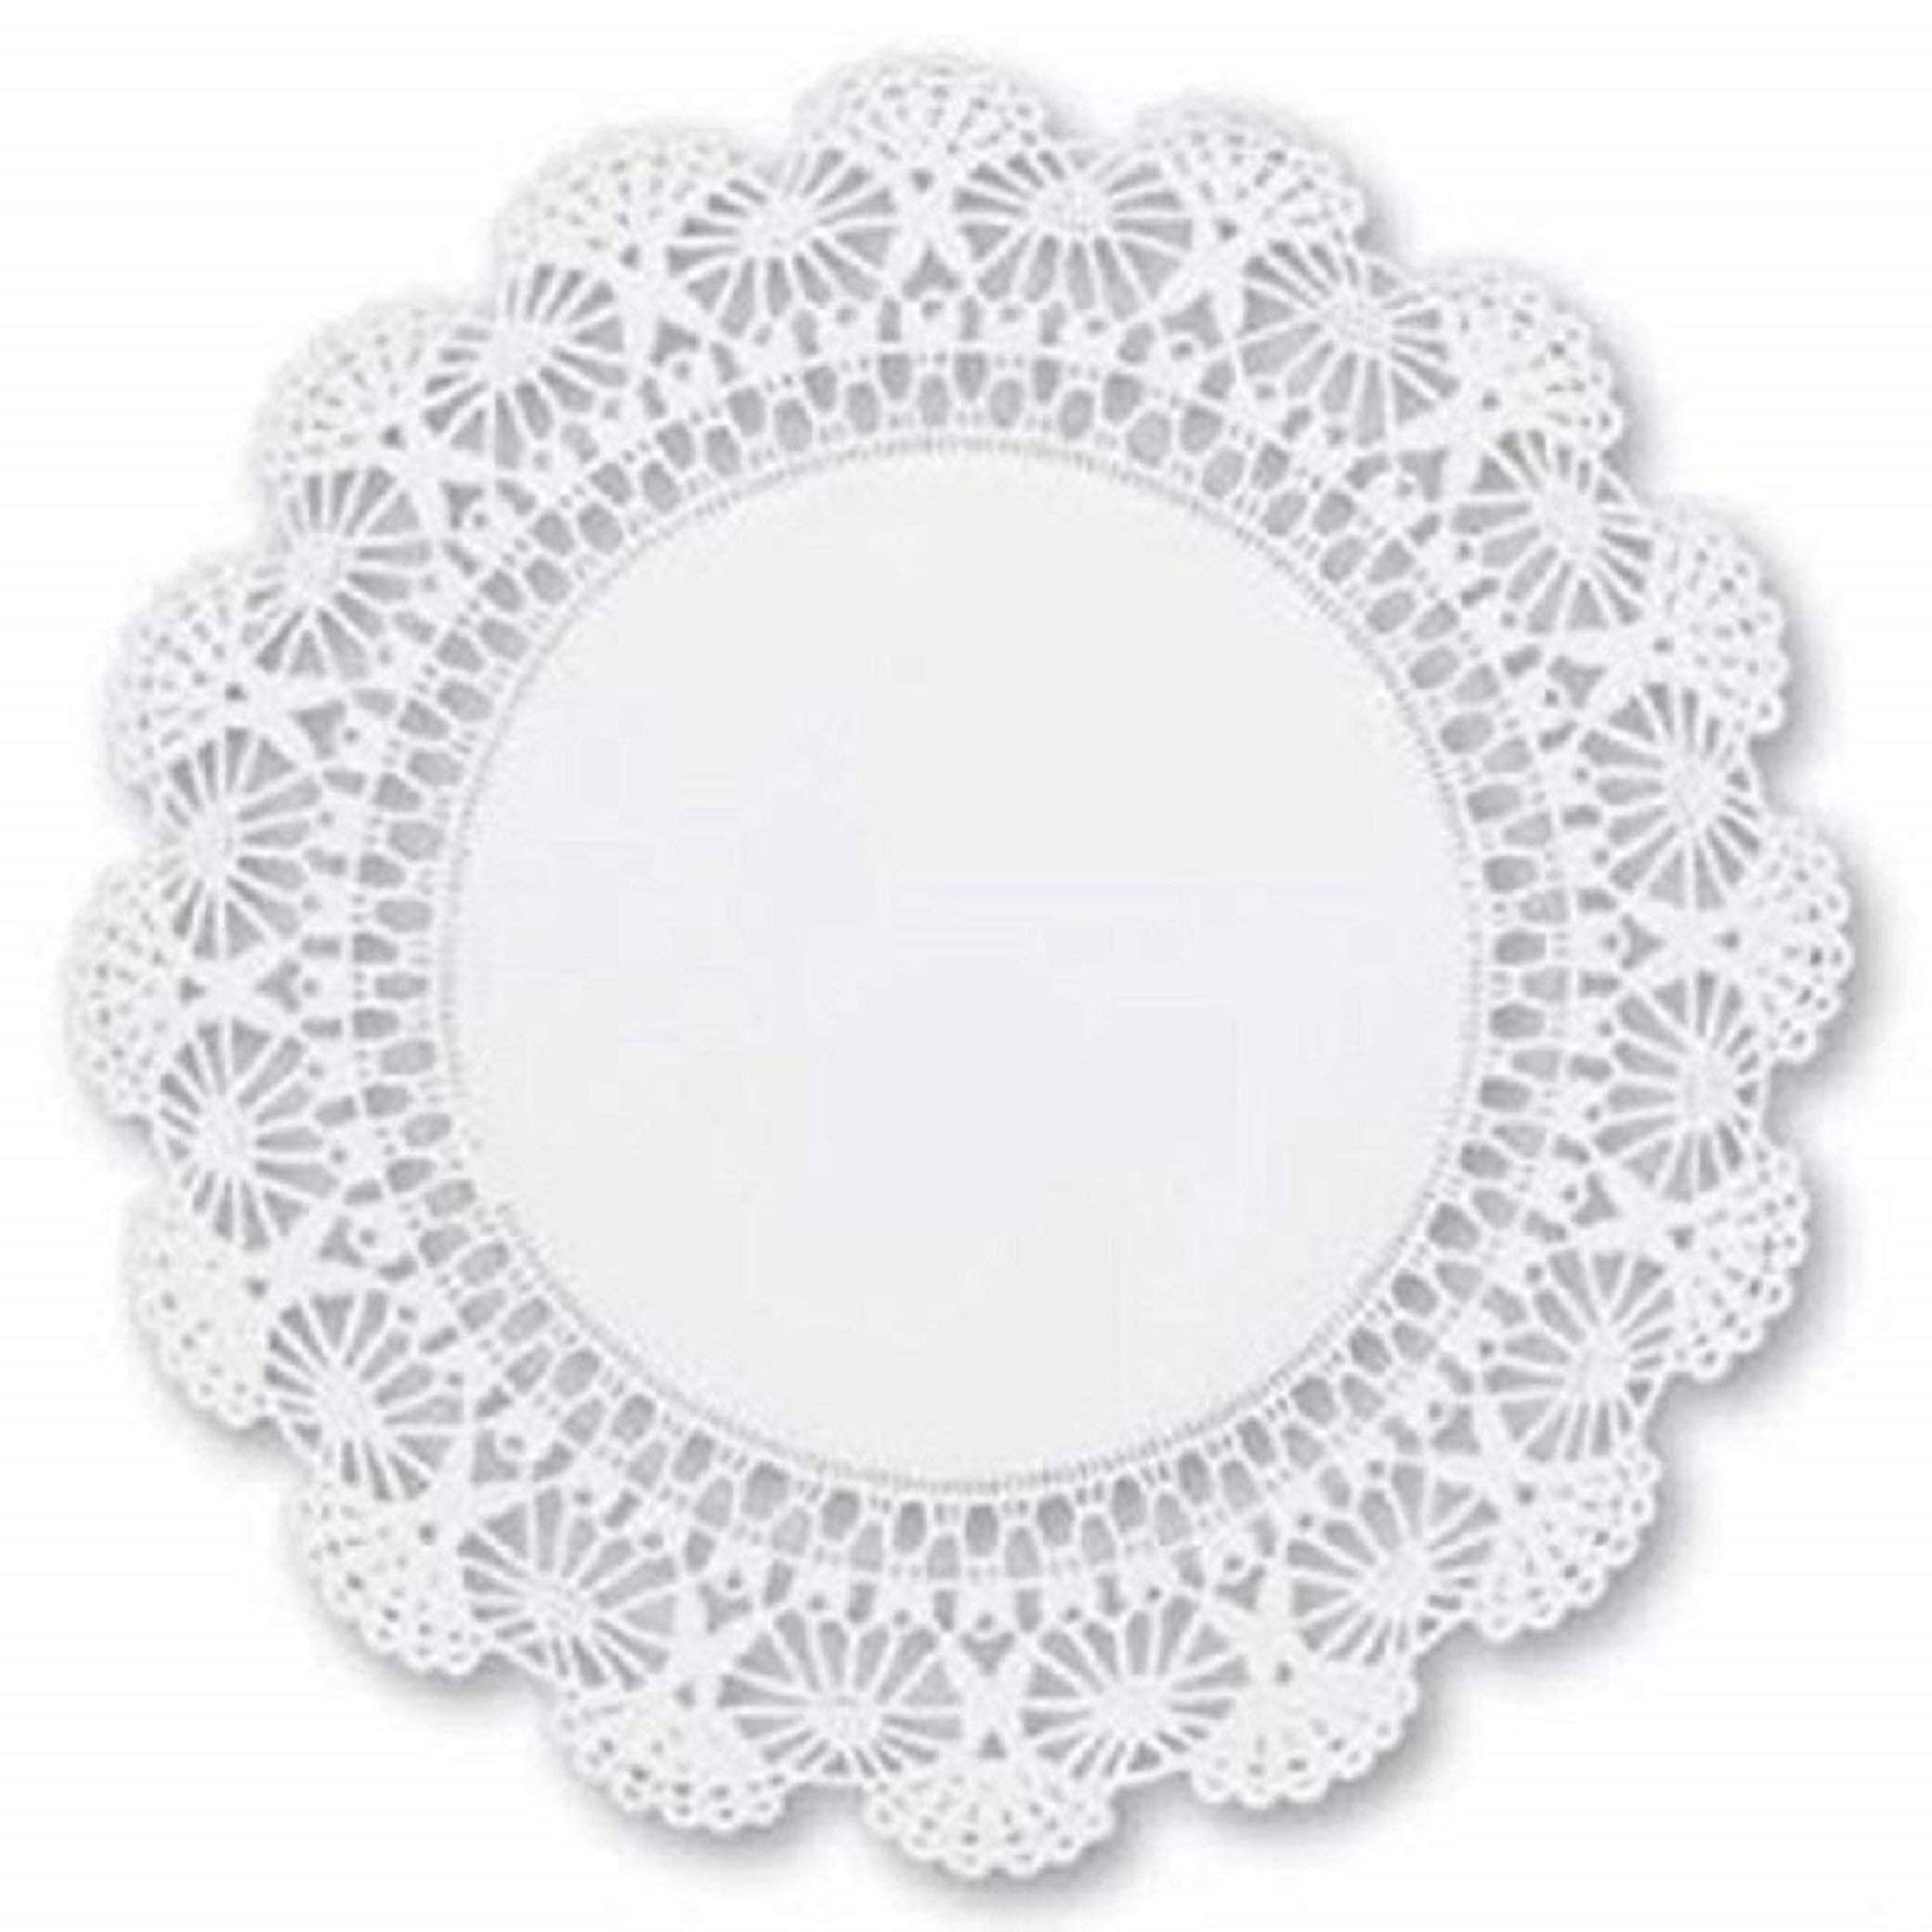 The Baker Celebrations 12 inch White Round Paper Lace Doilies - an Elegant Addition to Your Beautiful Table Settings (60)